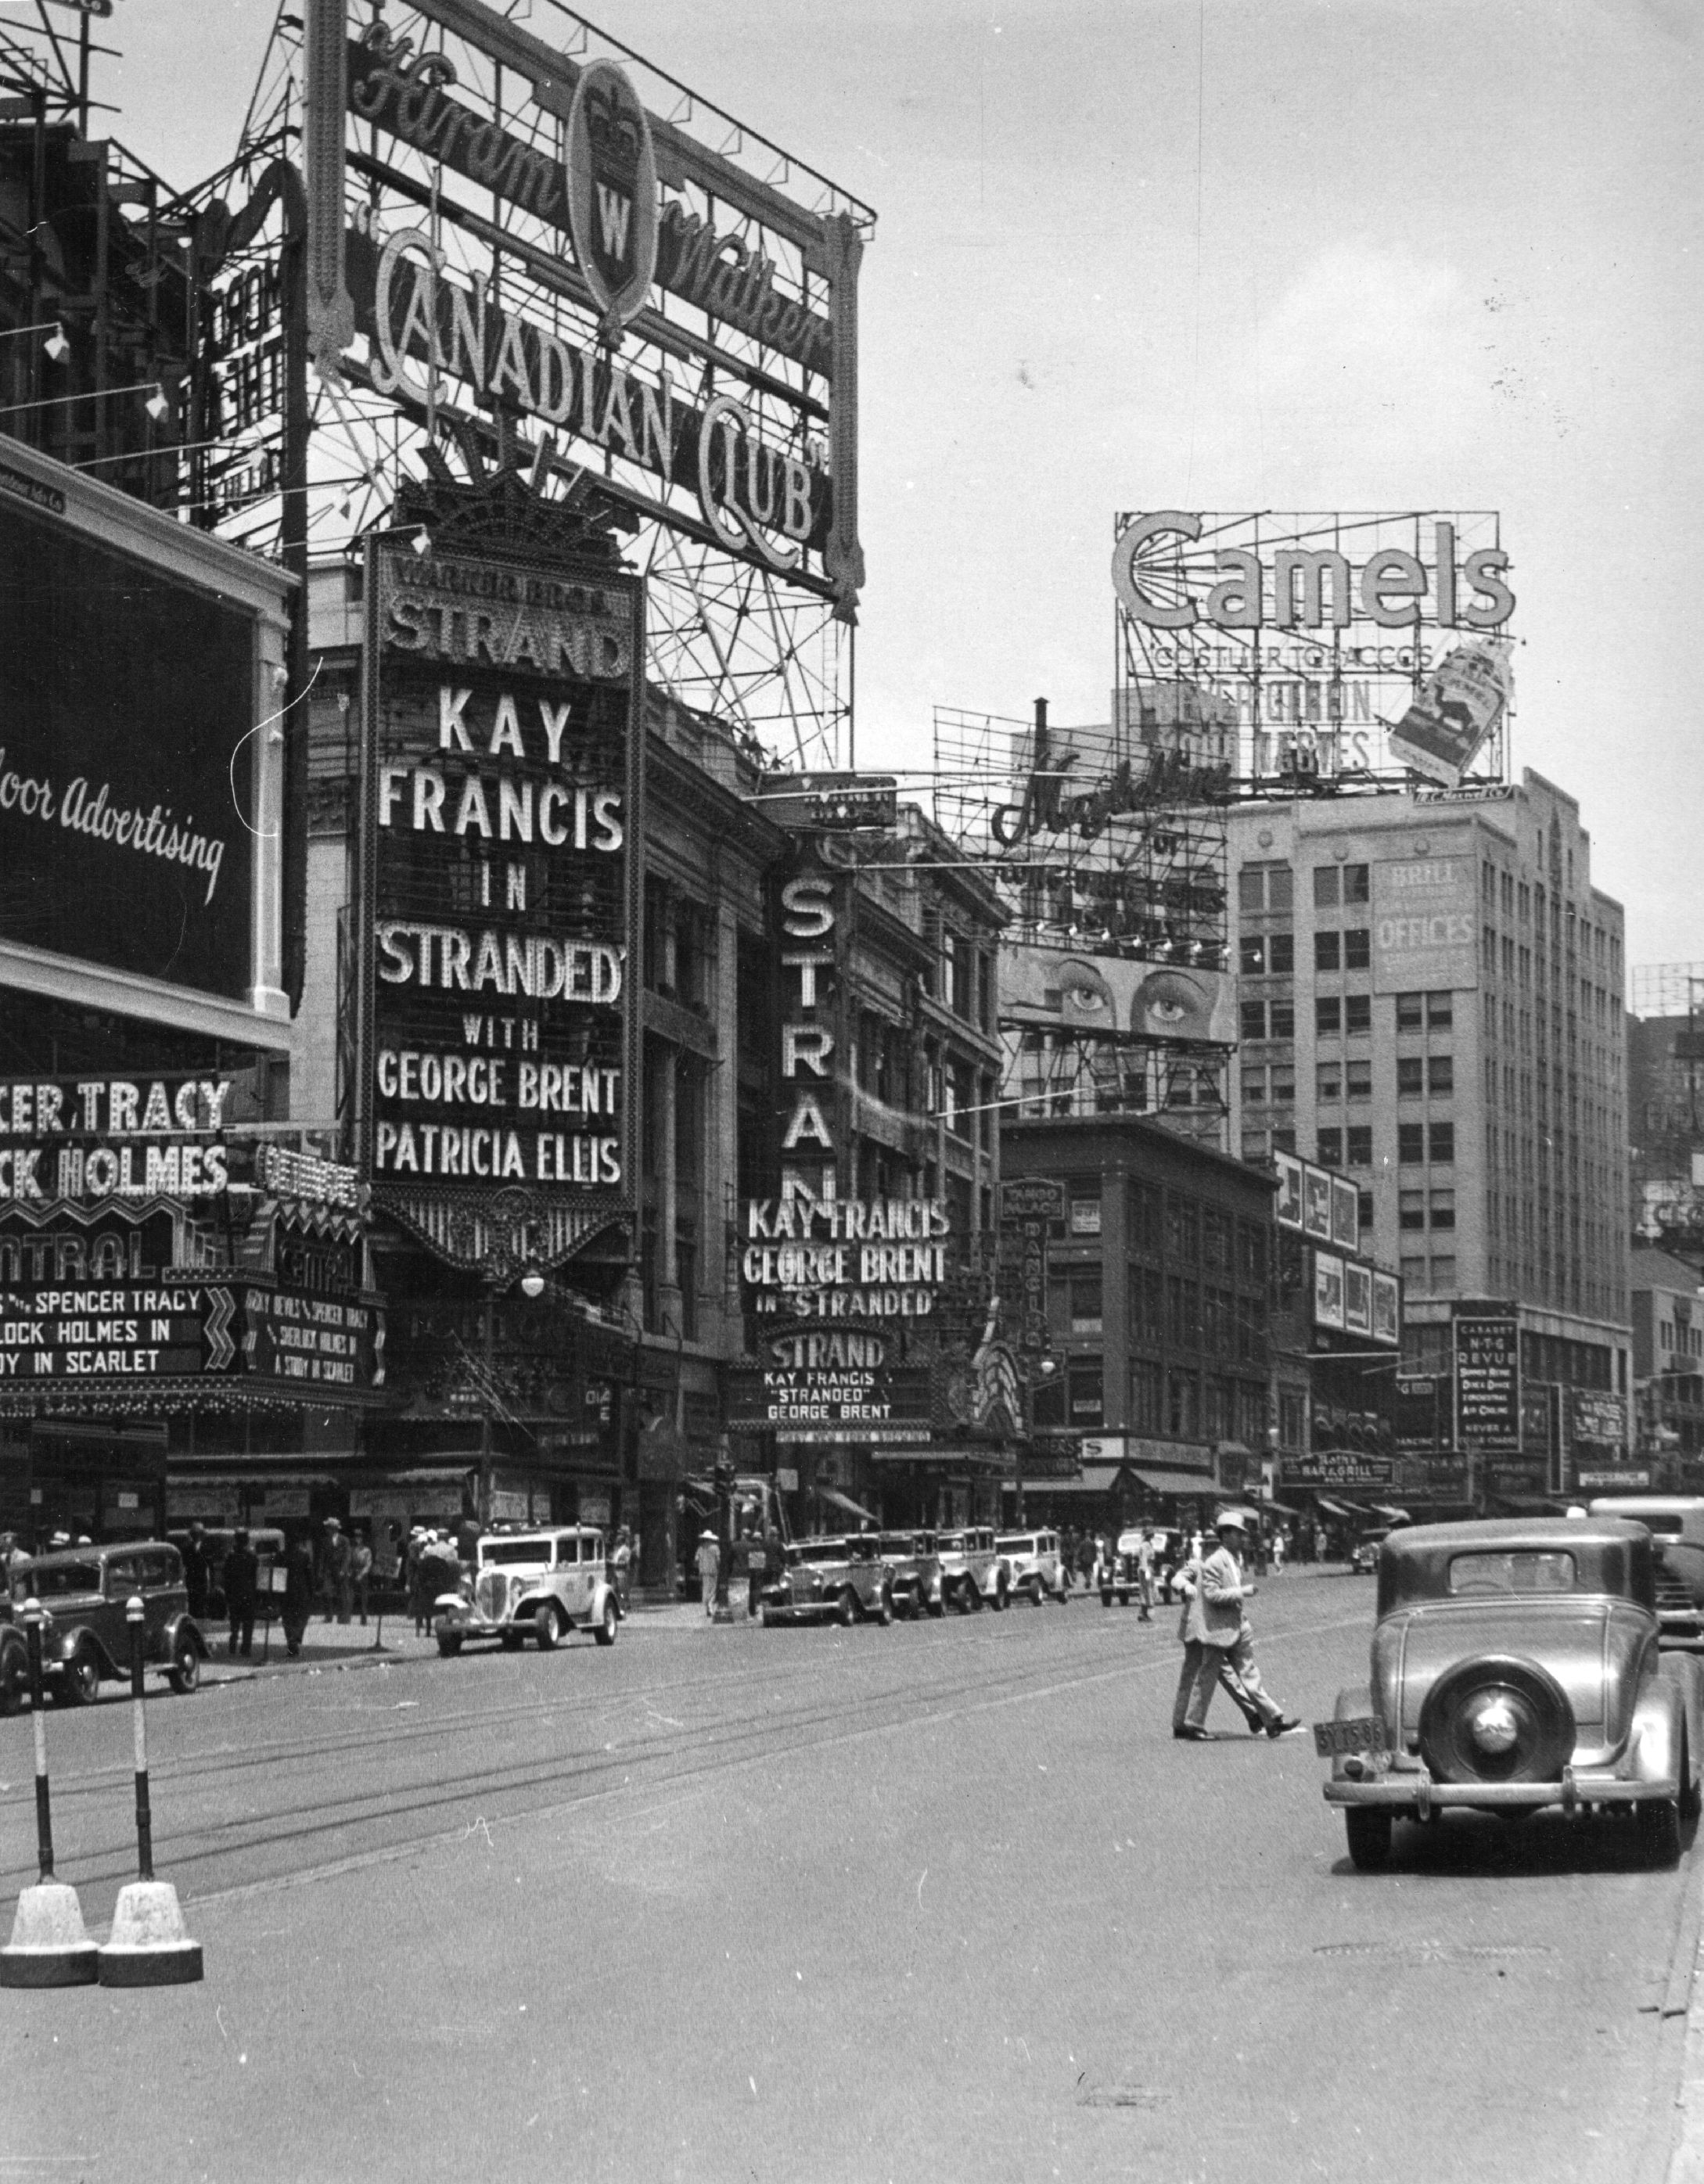 The Strand Cinema on Broadway New York in 1925